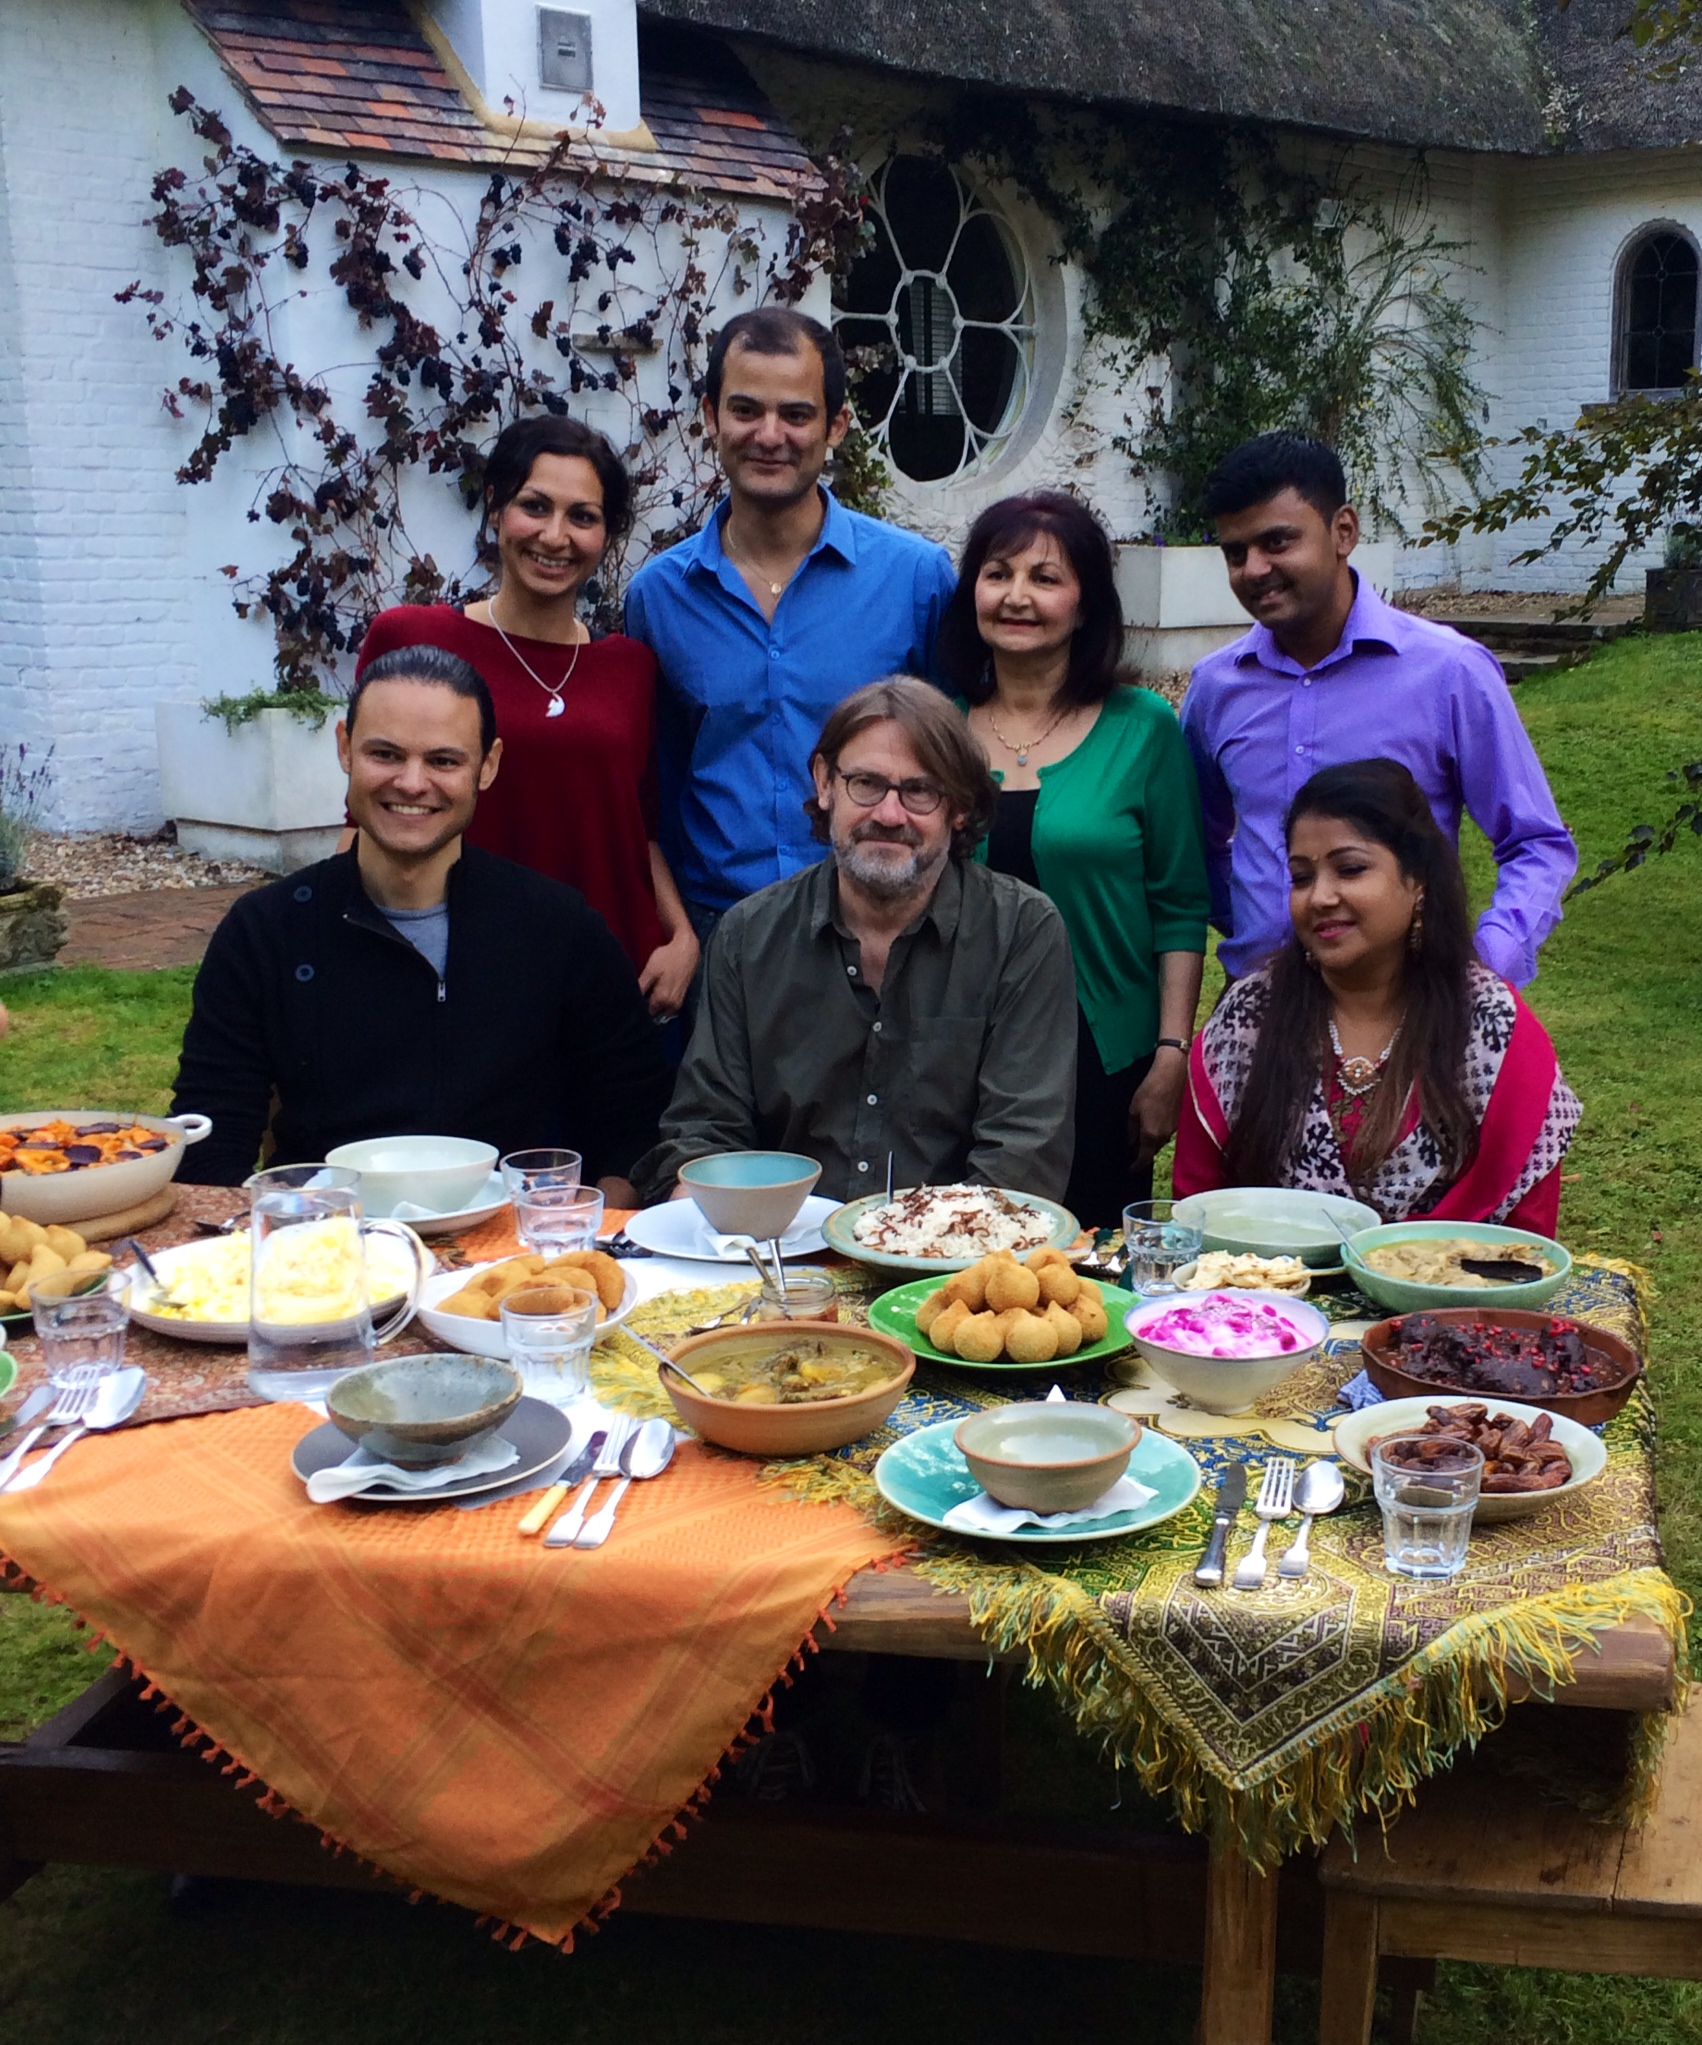 Feast with Nigel Slater and the team of talented home cooks